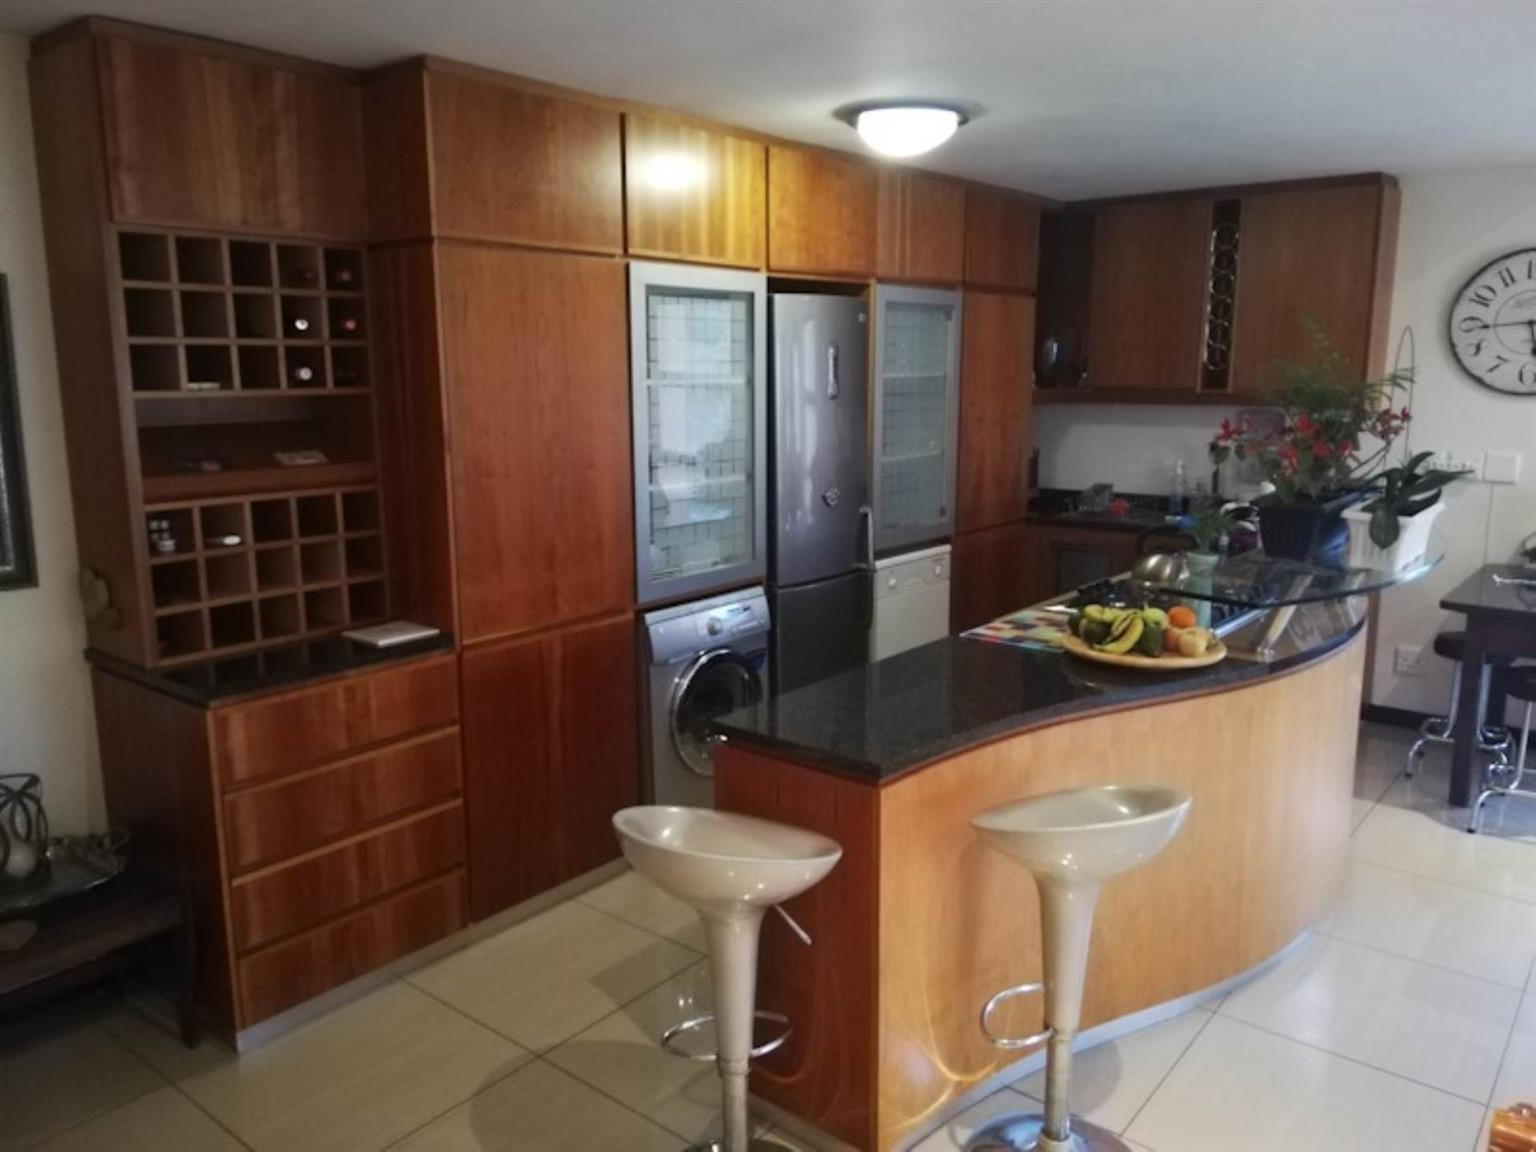 Apartment Rental Monthly in BOSKRUIN